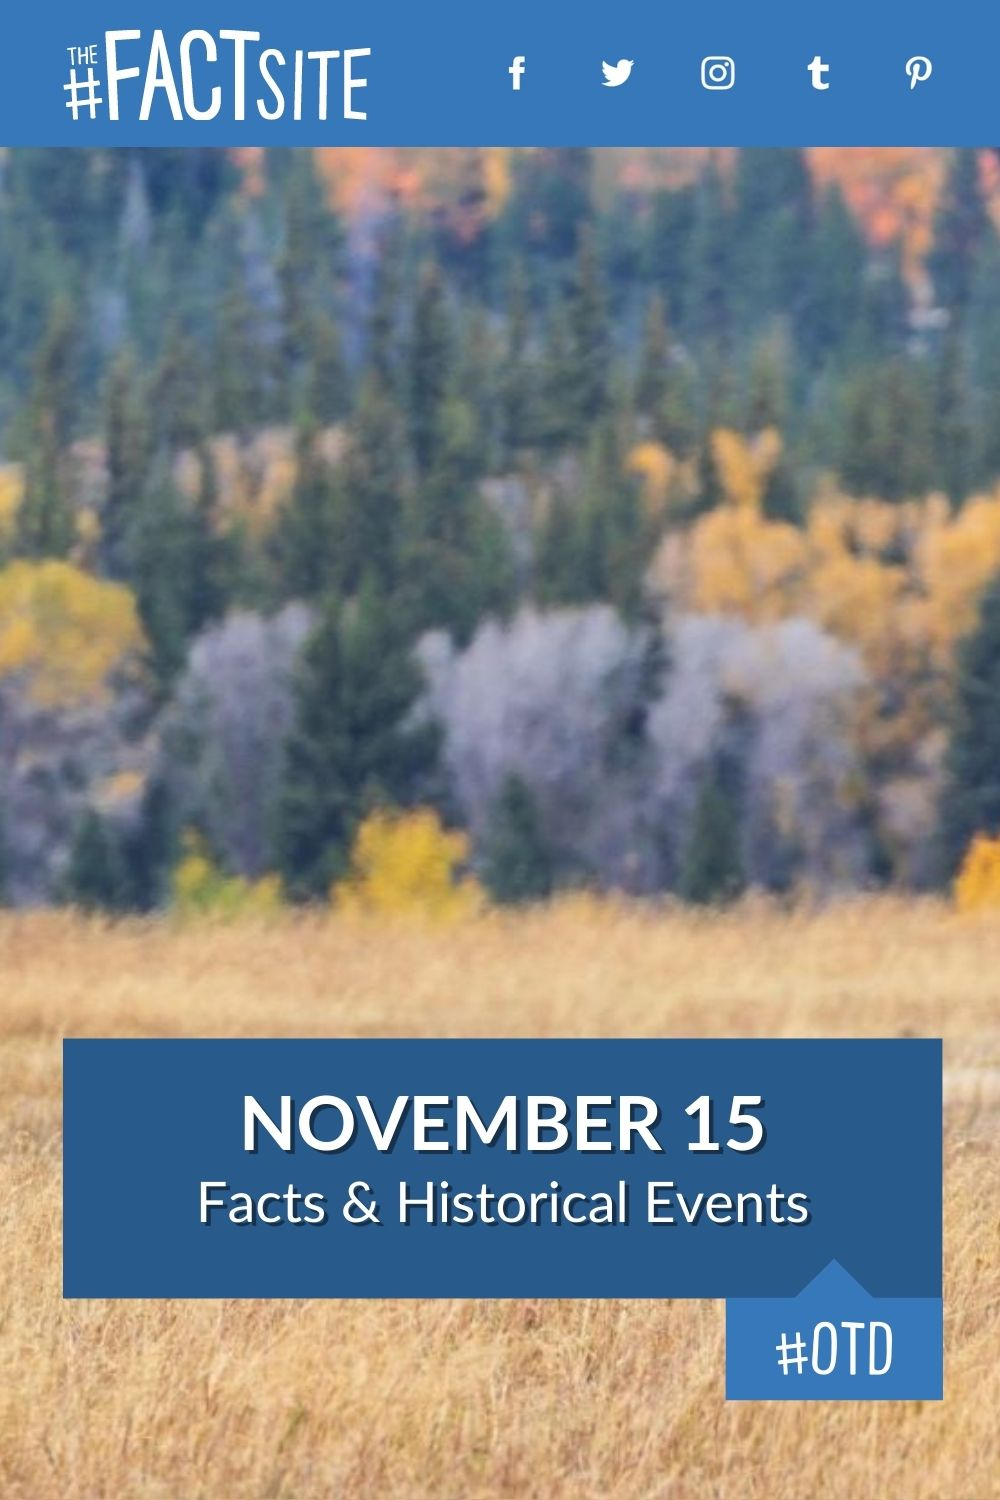 Facts & Historic Events That Happened on November 15